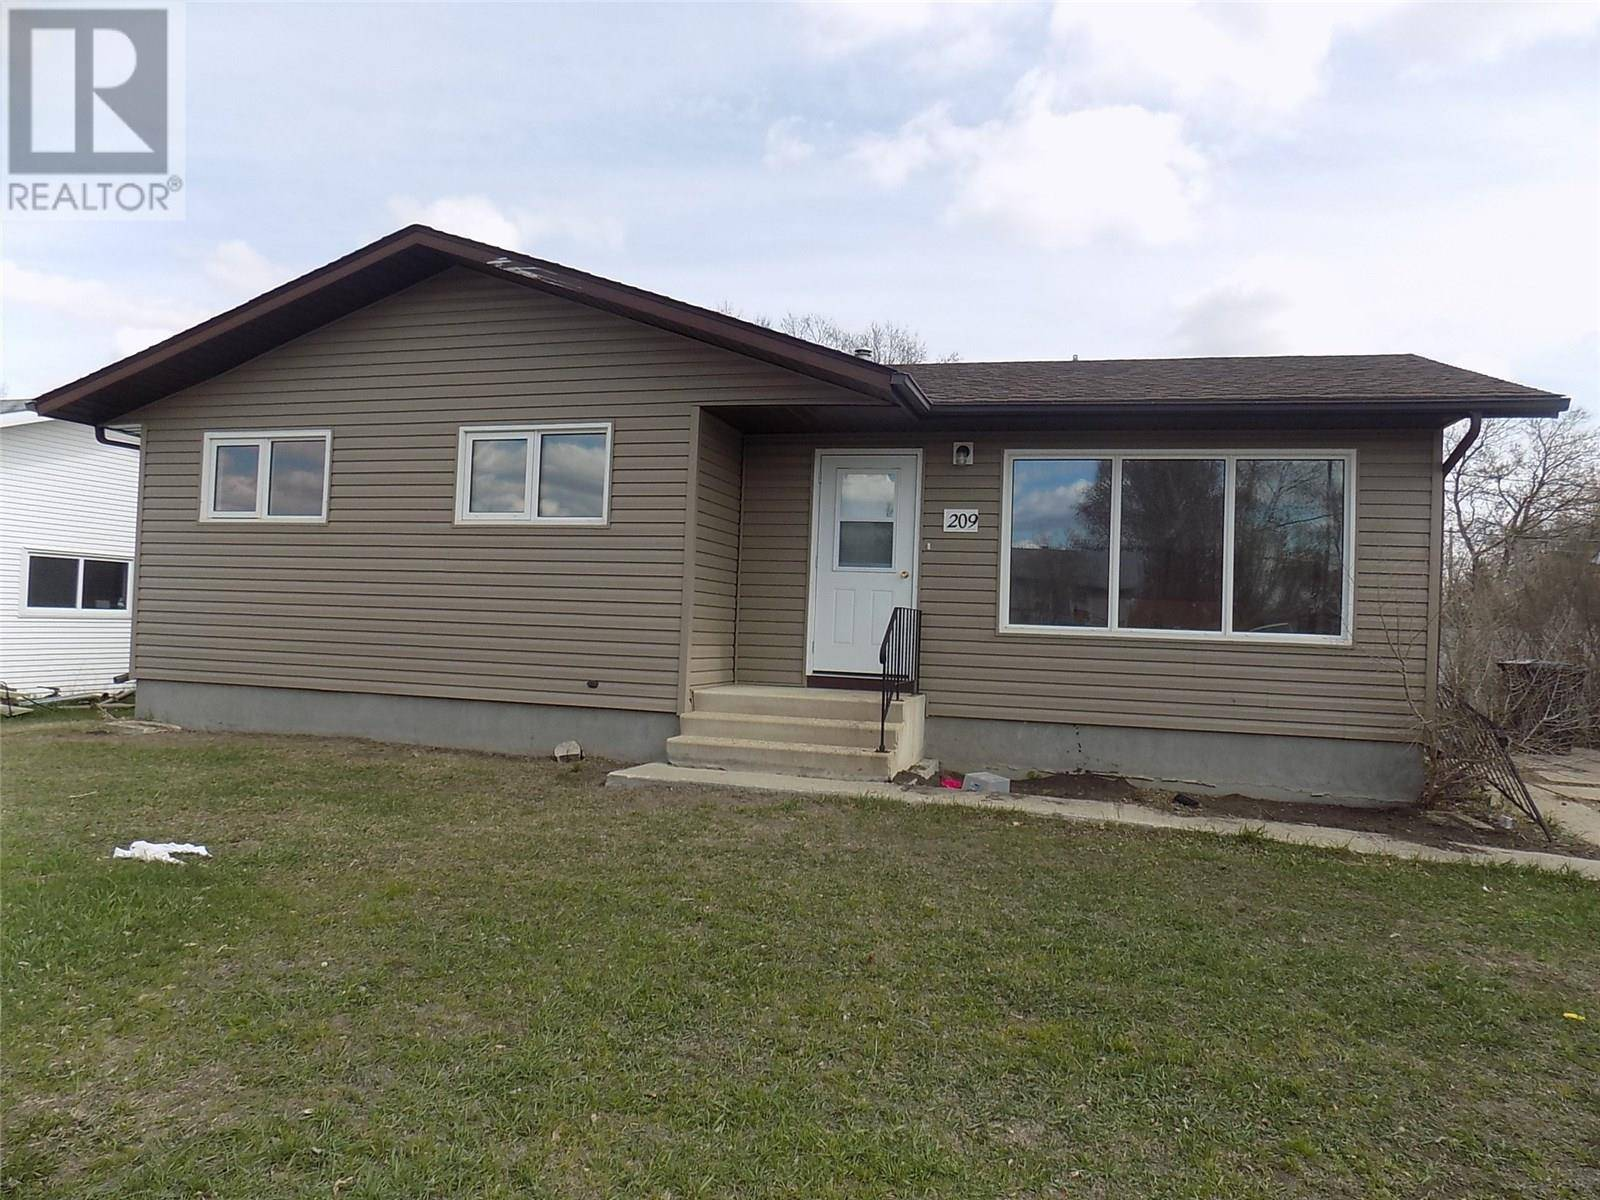 House for sale at 209 Heward St Stoughton Saskatchewan - MLS: SK772289